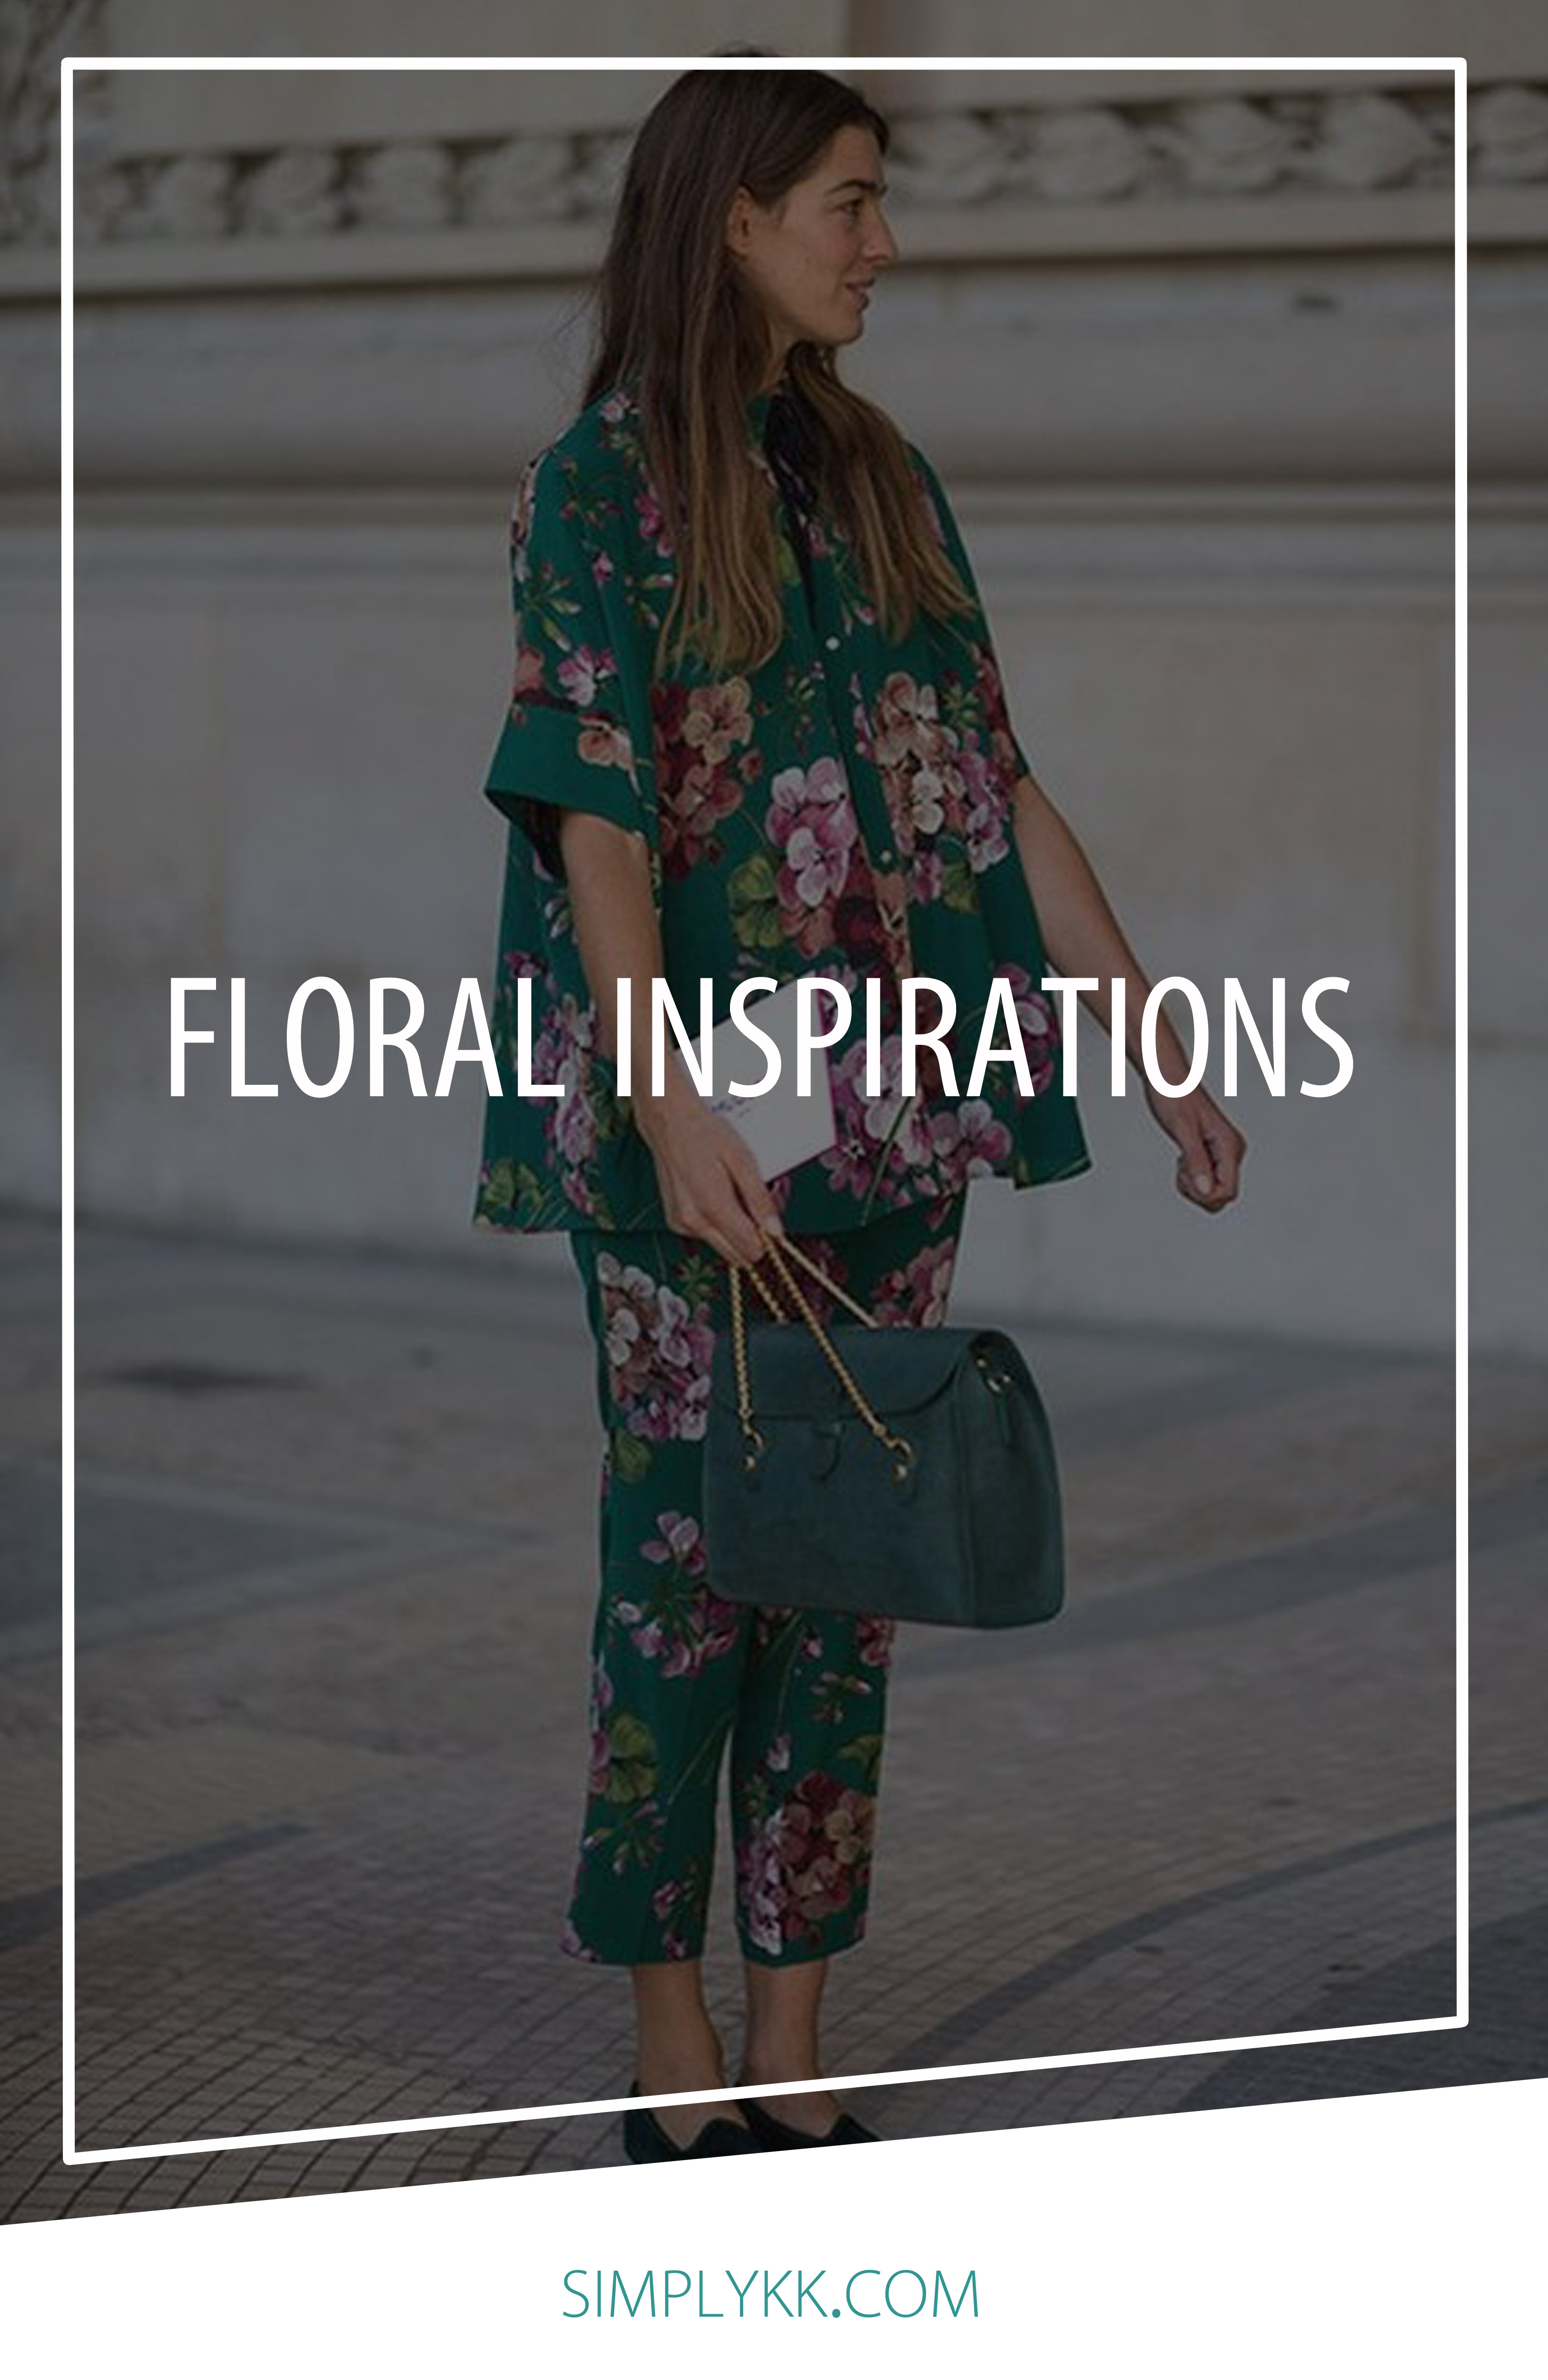 Incorporate floral into your spring looks | Simply KK